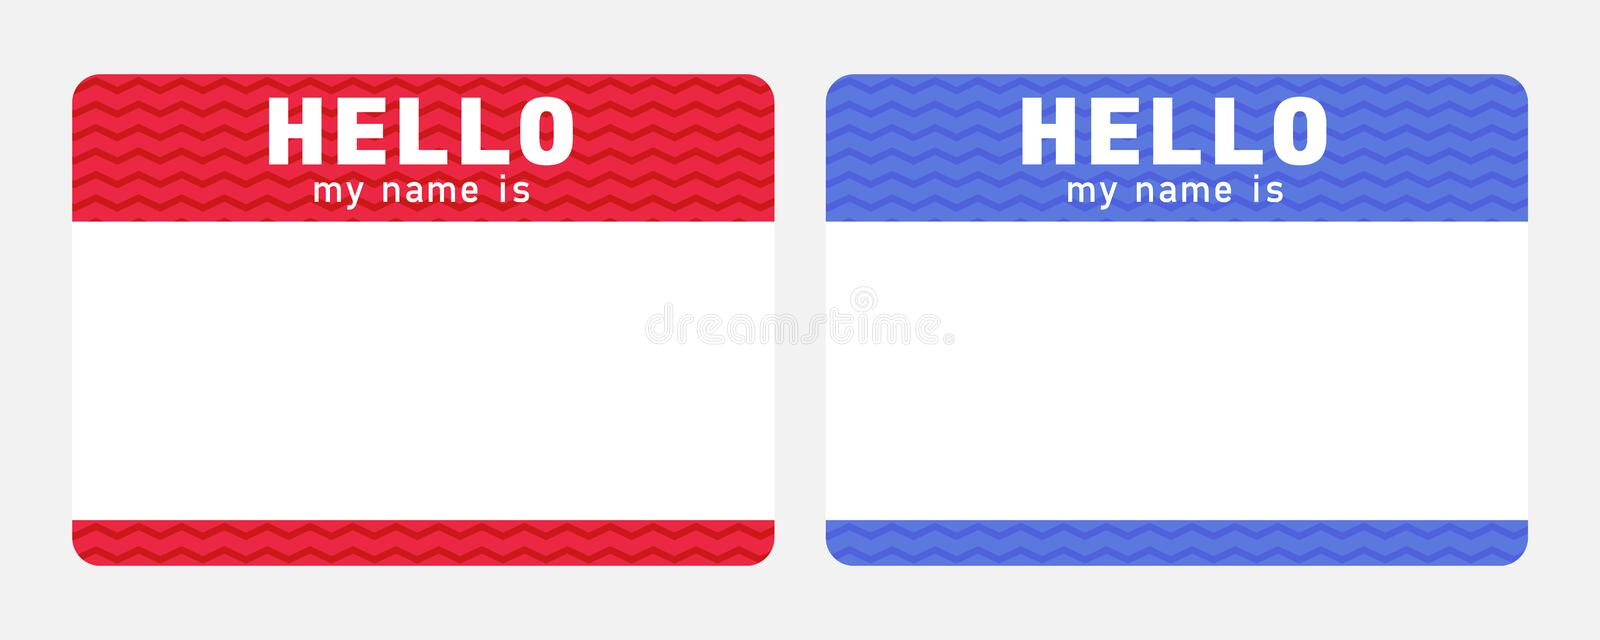 Hello my name is - sticker. Red and blue nametag. Dating and meeting ice breaker label stock illustration